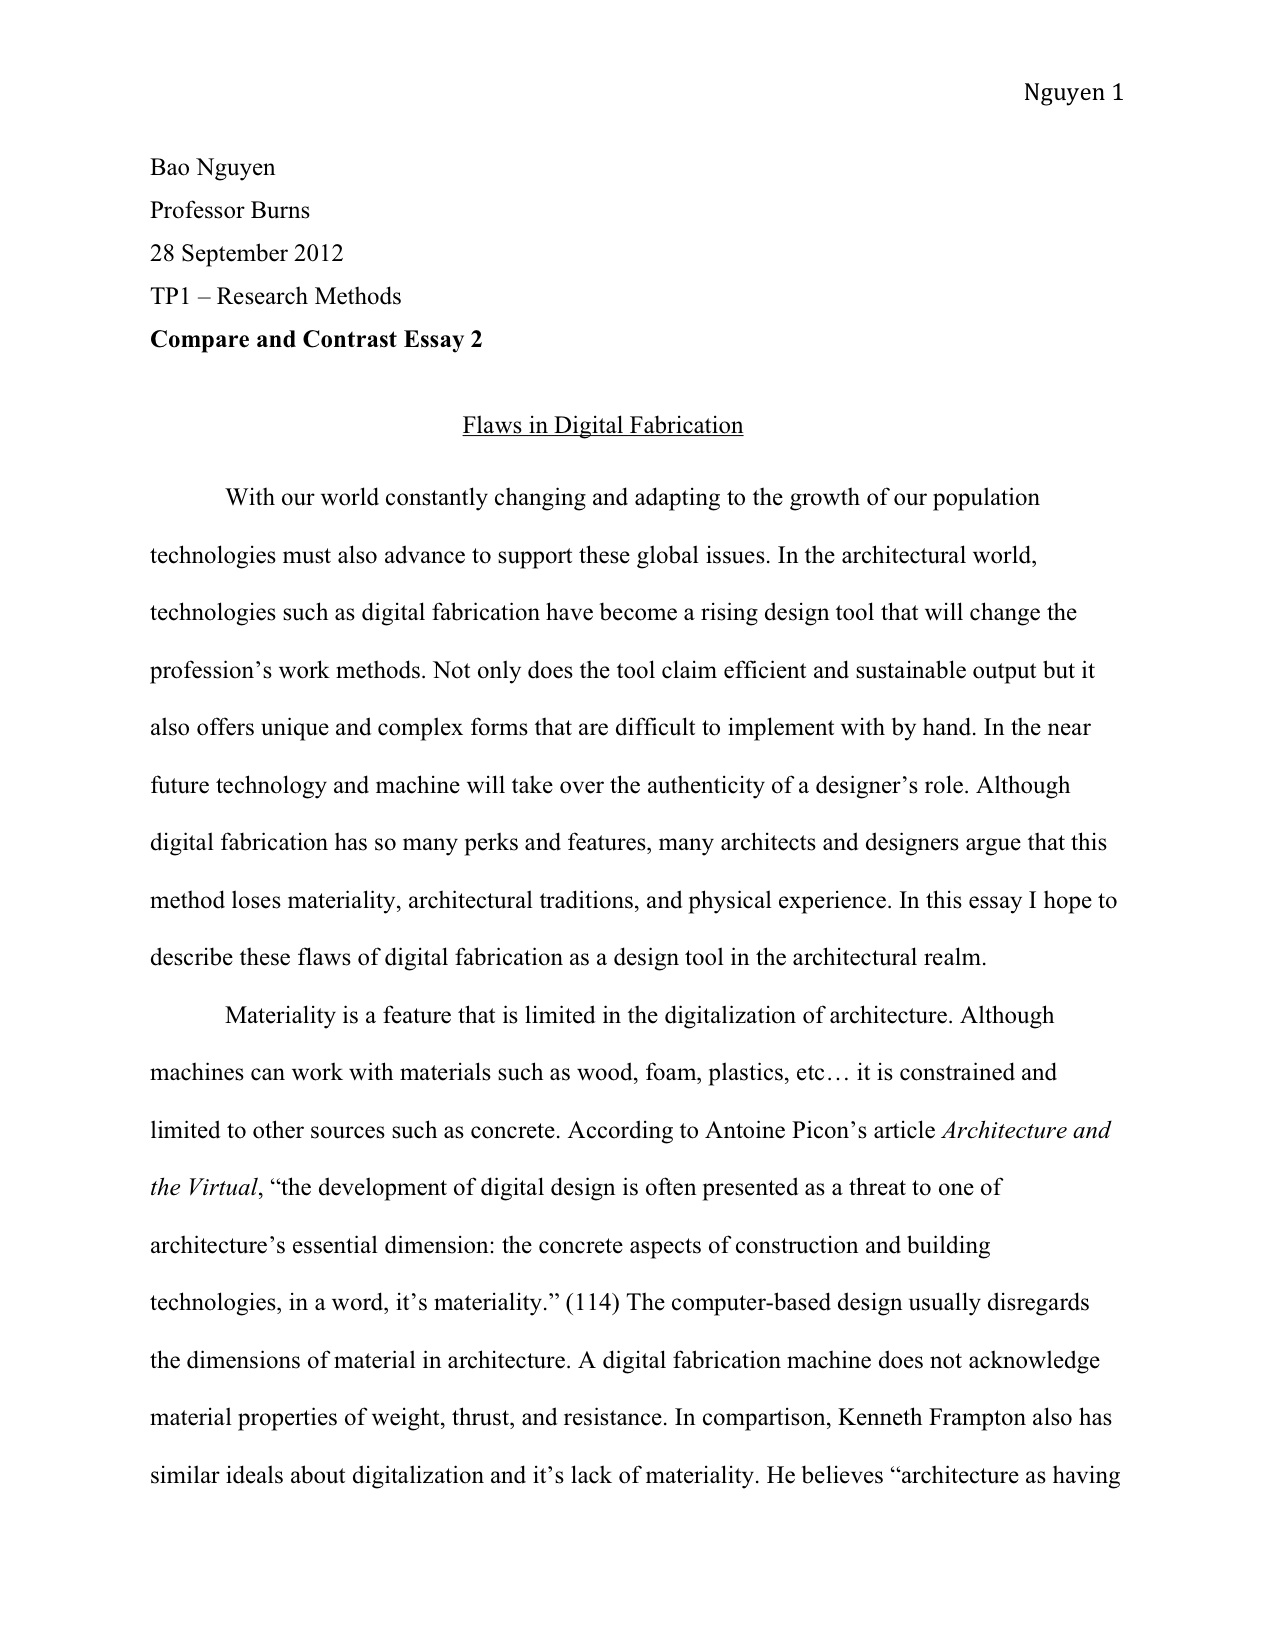 005 How To Write An Essay Example Tp1 3 Shocking In Mla Format Word 2013 About Yourself For College Application Full